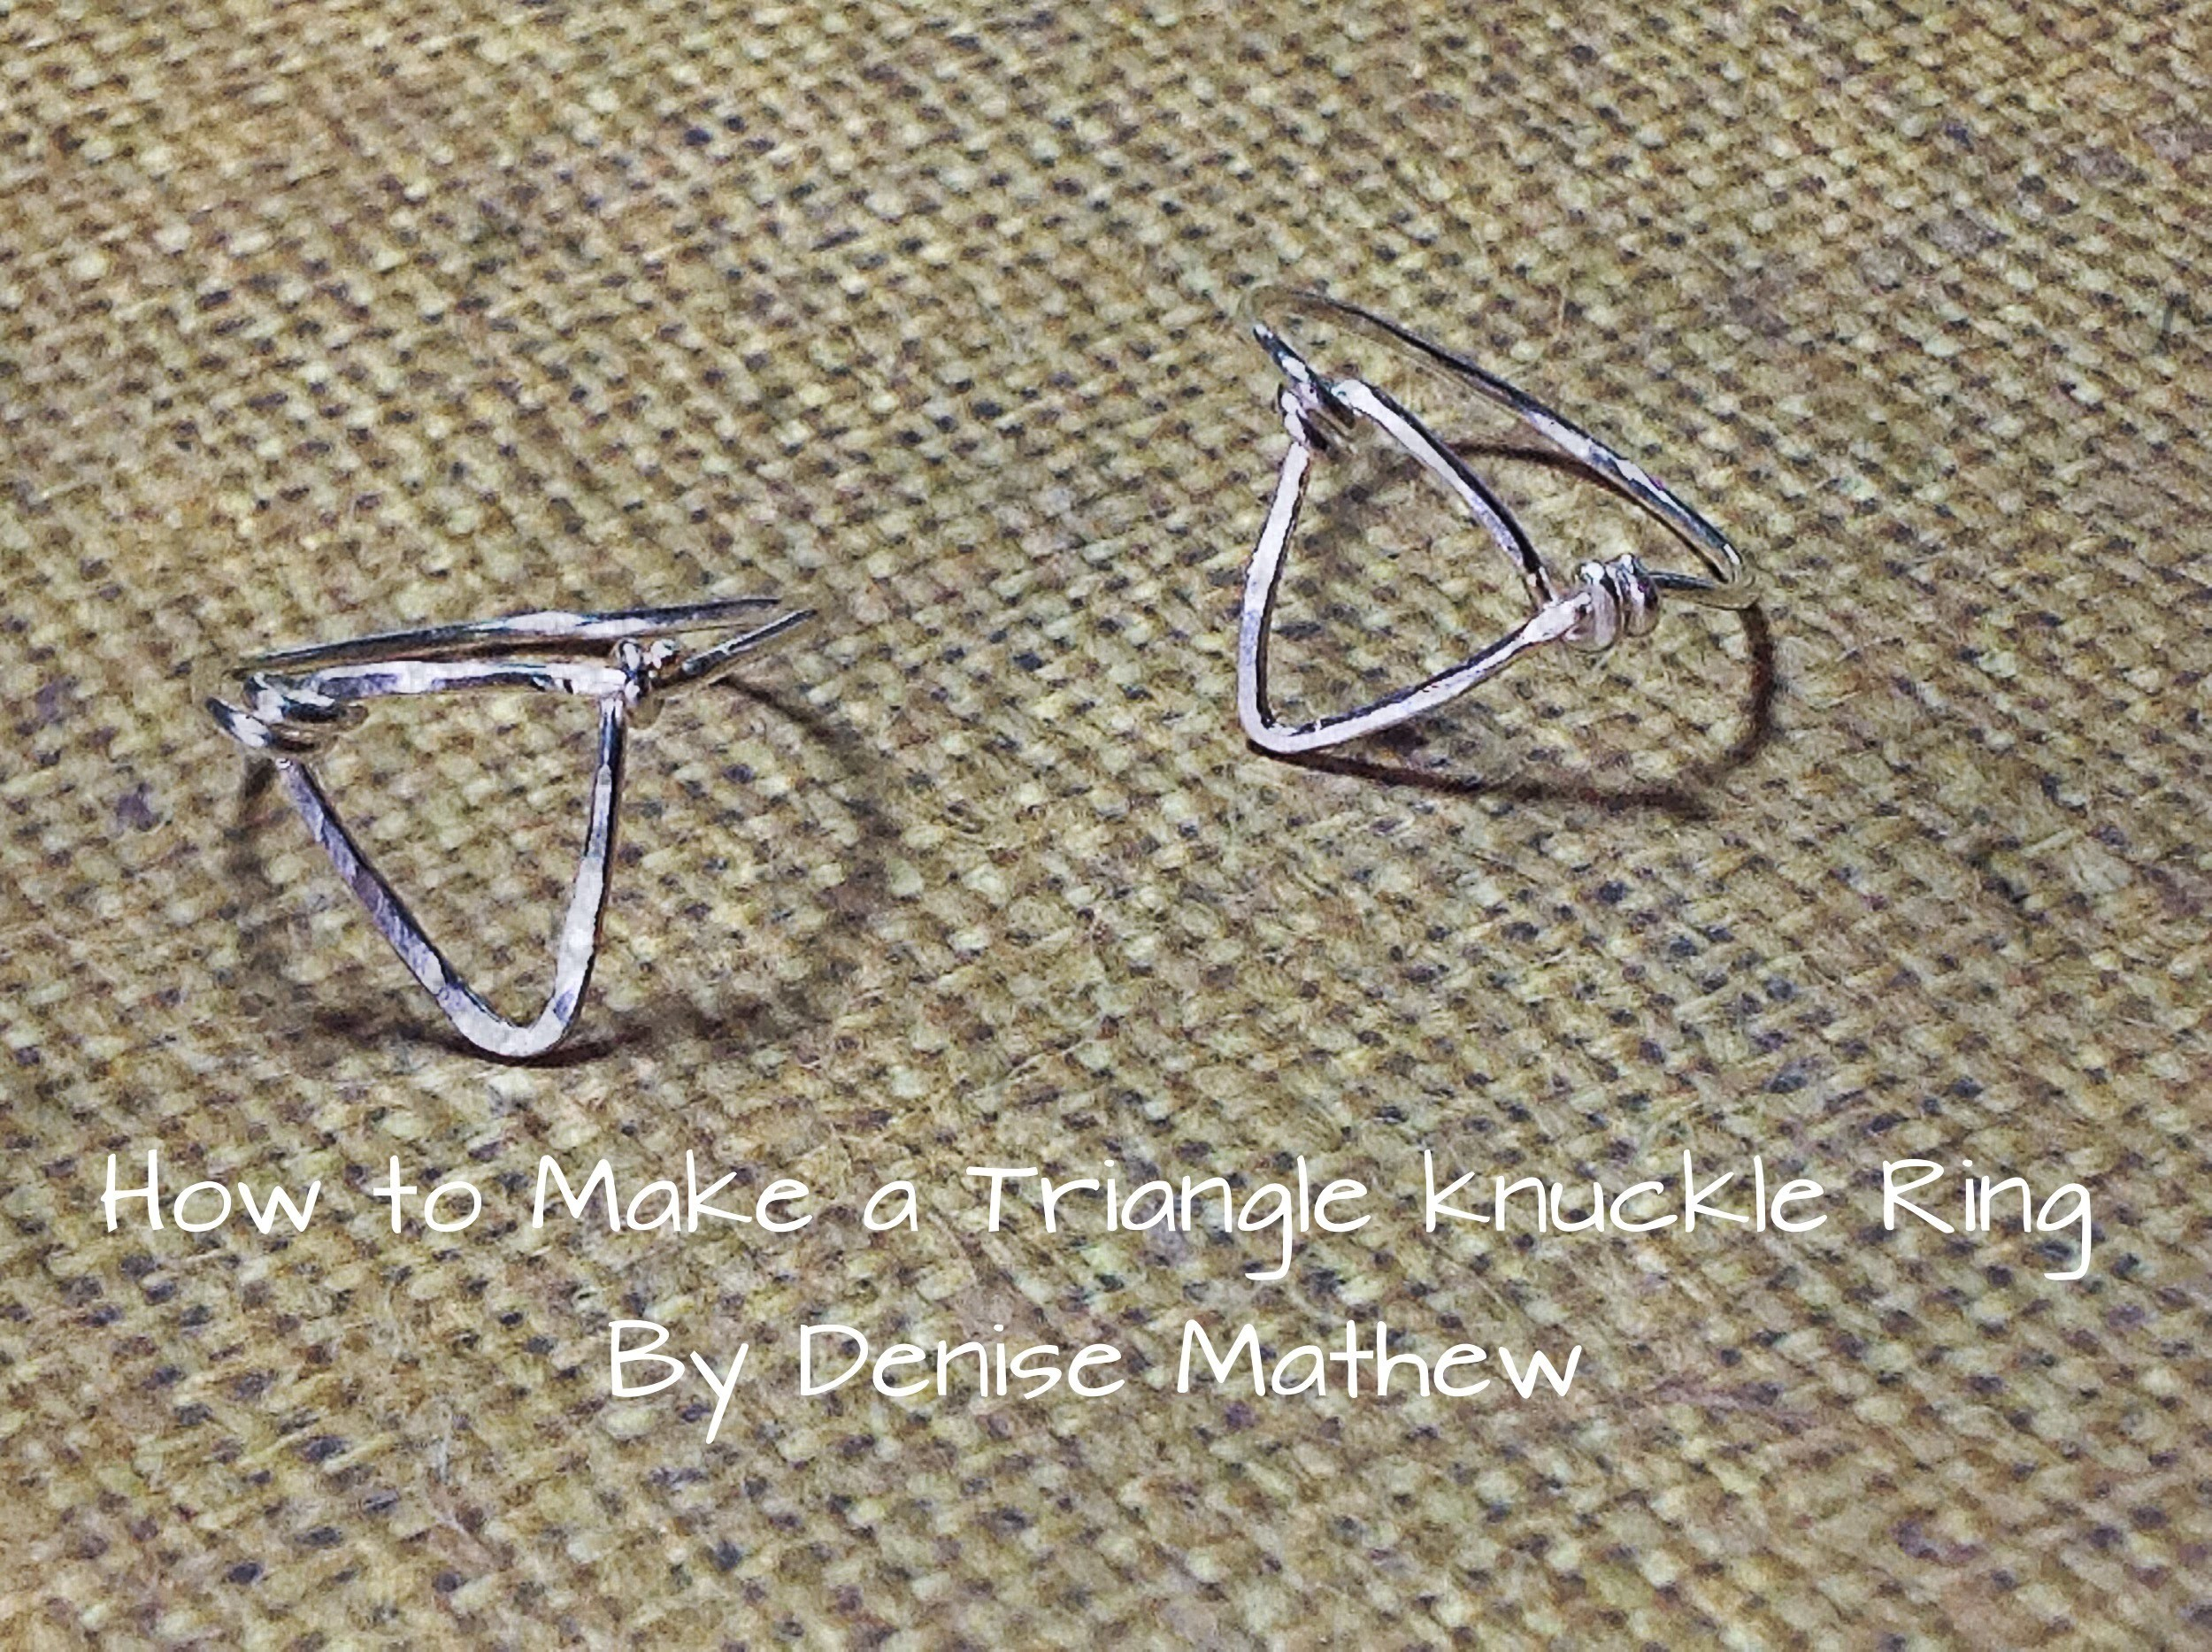 How to Make a Triangle Knuckle Ring by Denise Mathew